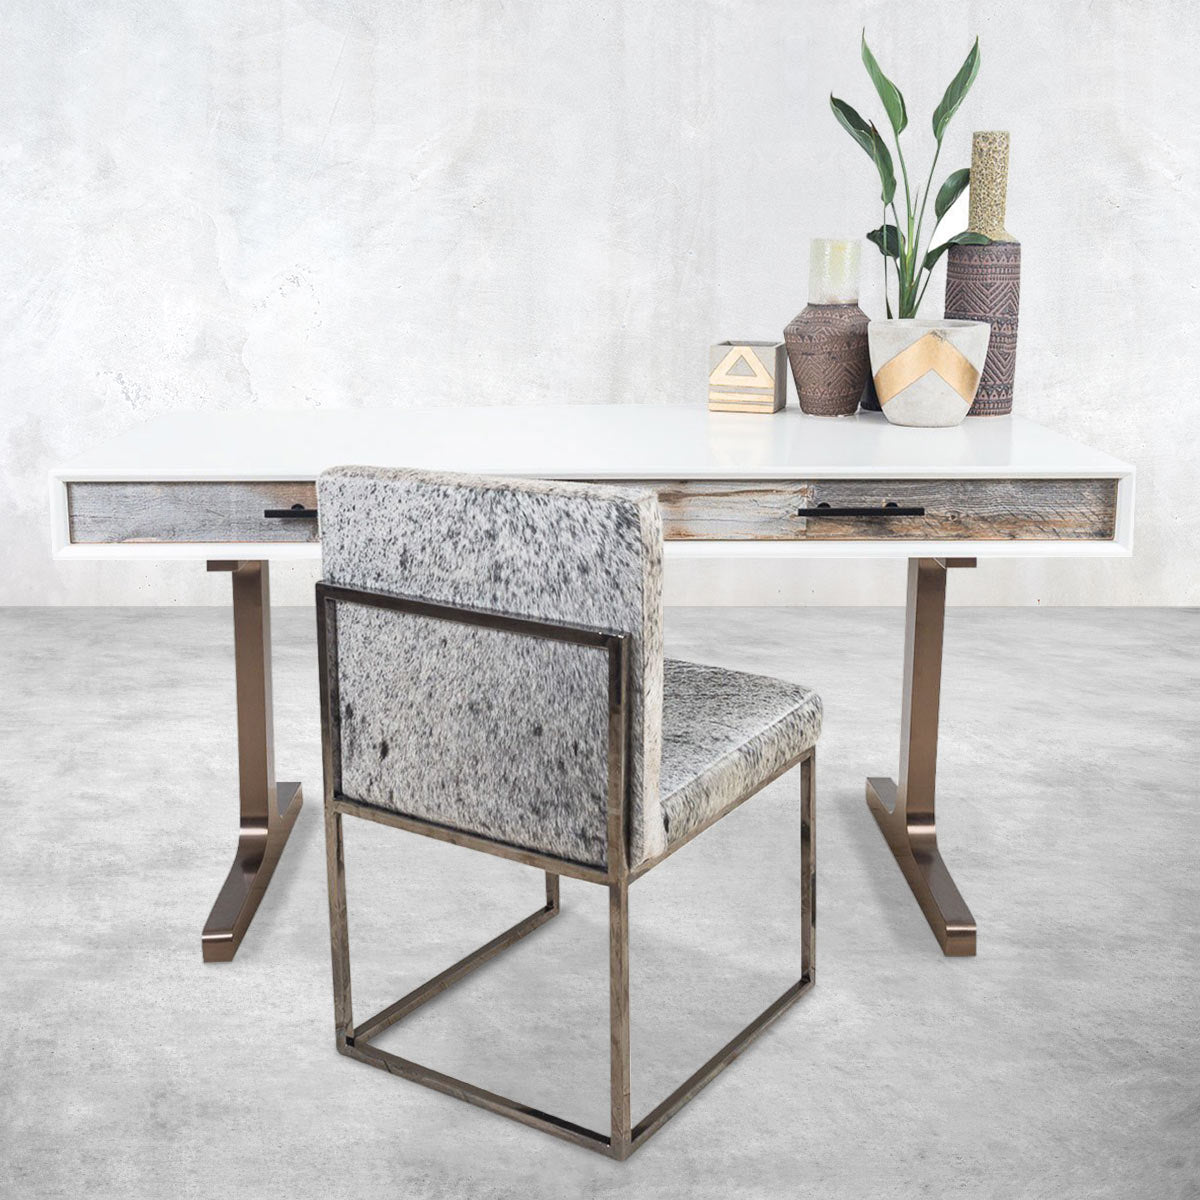 Cody 2 Desk with Brushed Copper T-Legs